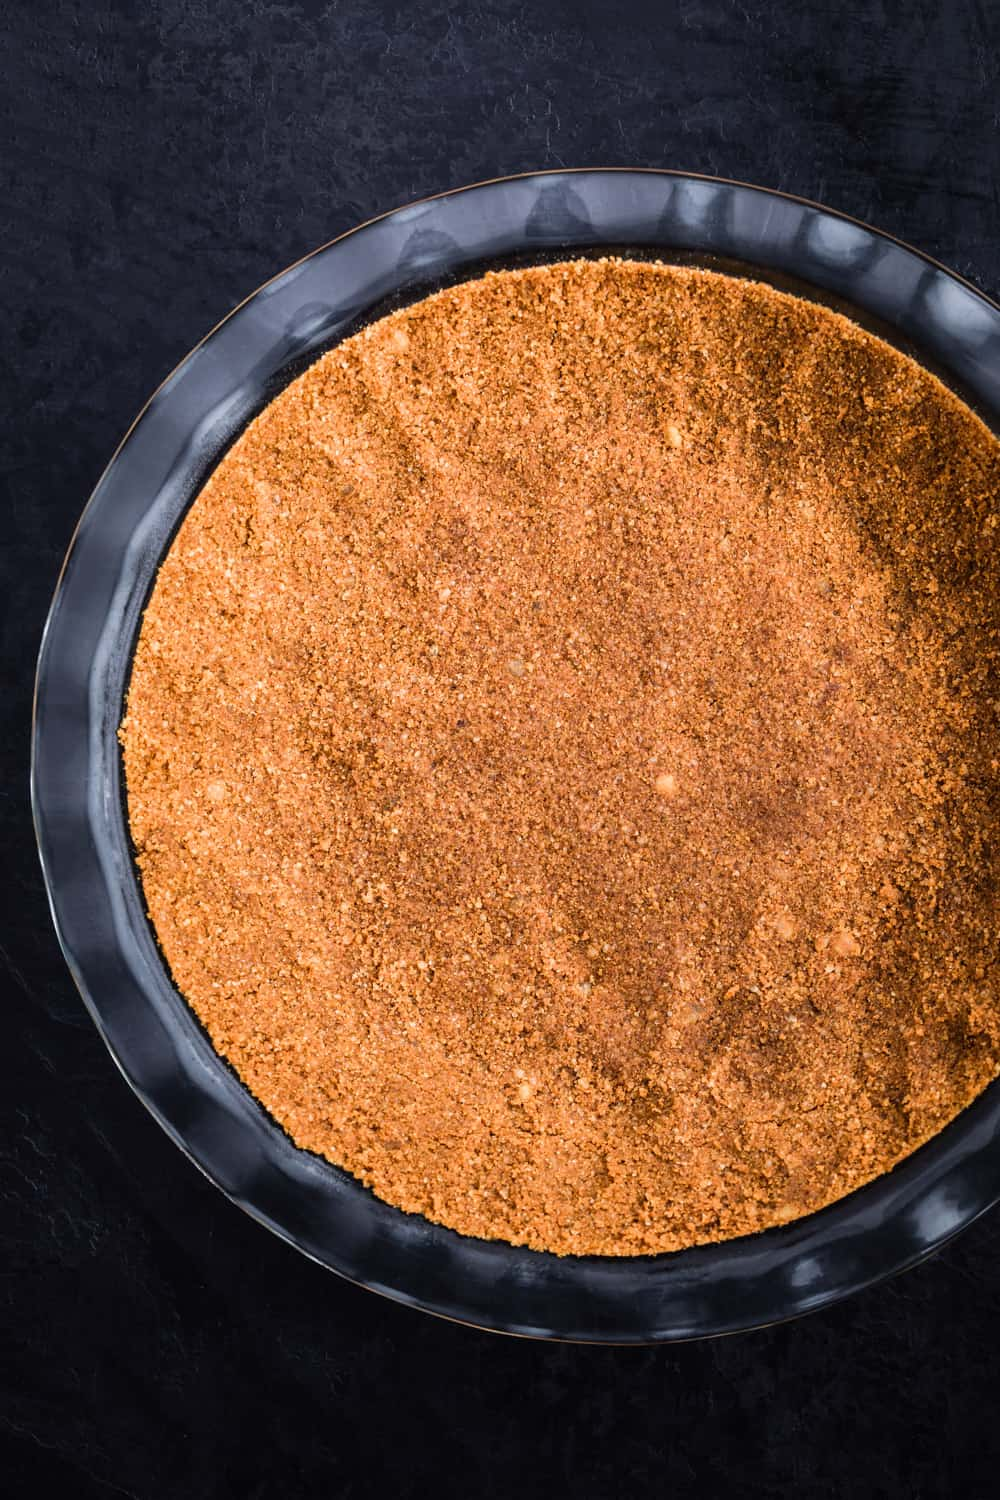 Ginger snap crust patted into the pie plate and ready for the oven.